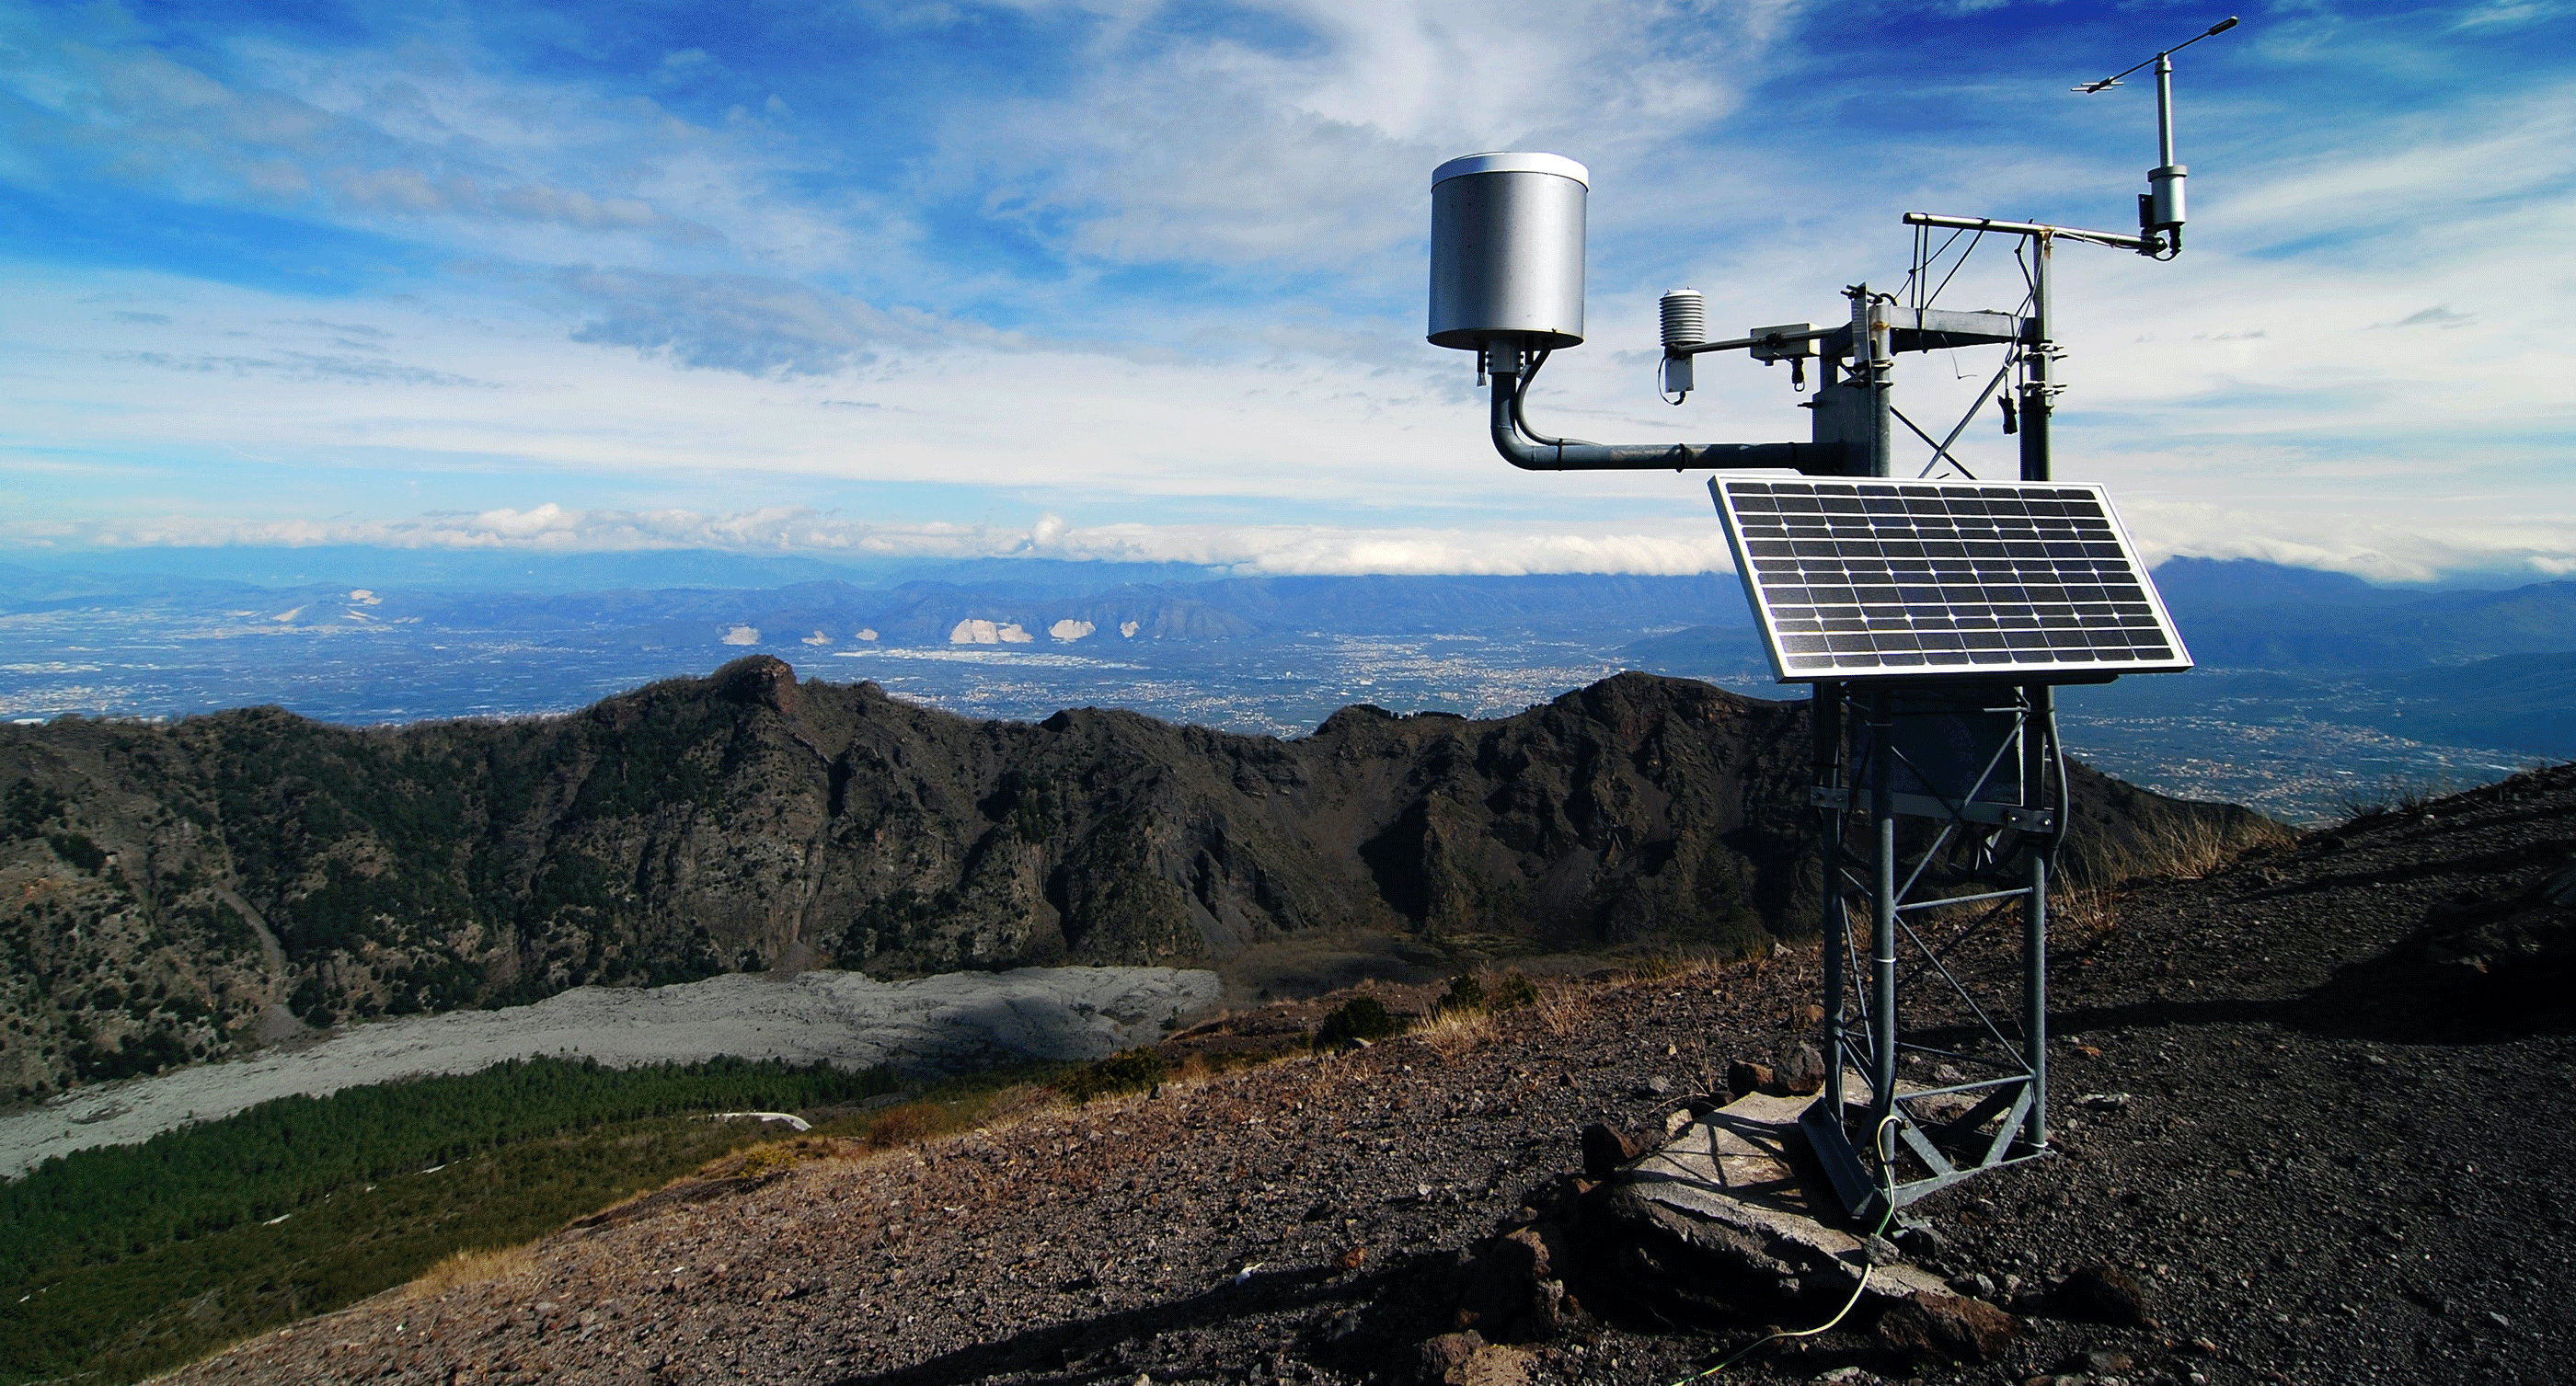 Personal Weather Station on Hill